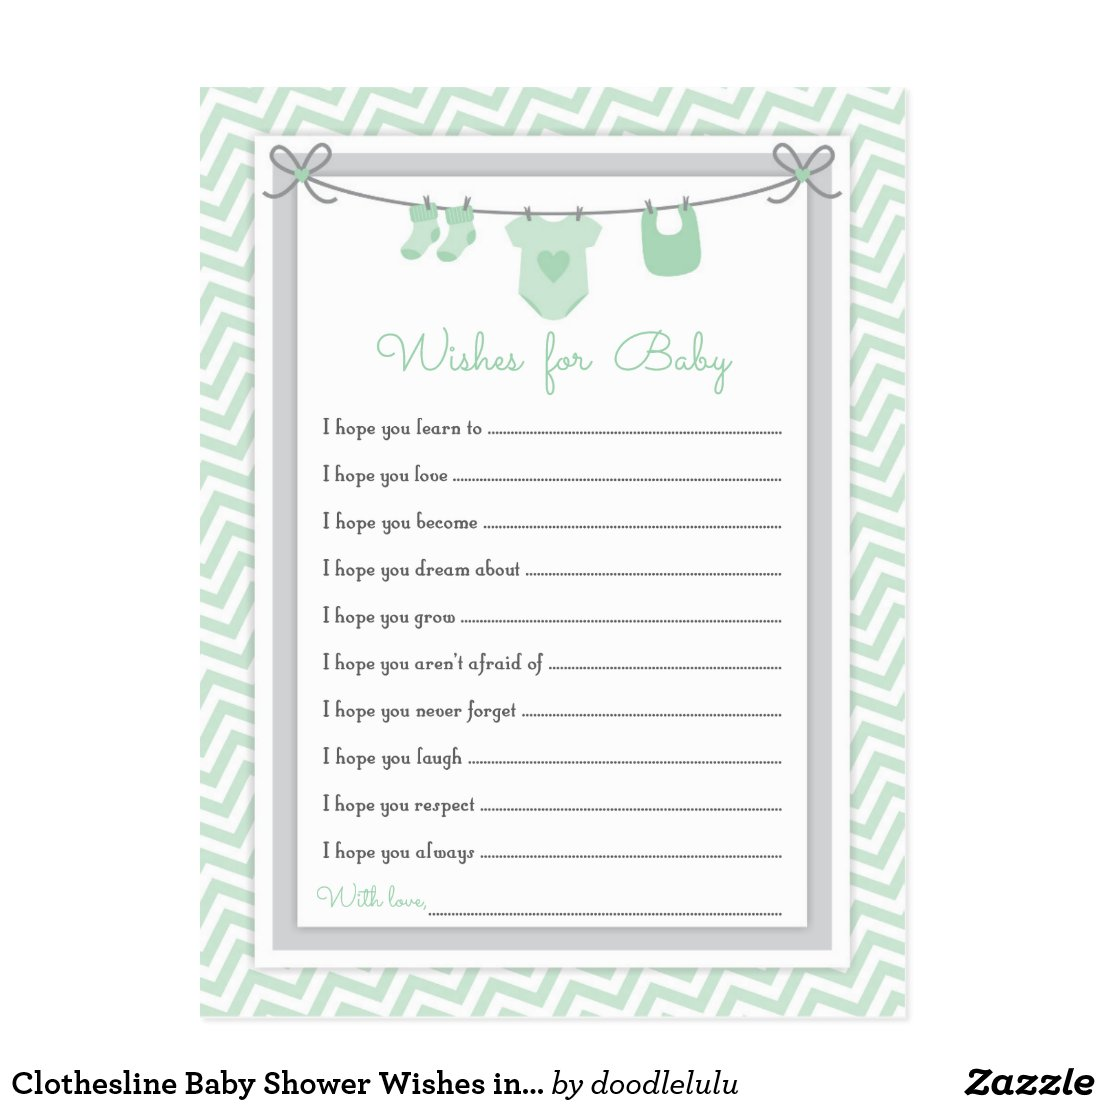 Clothesline Baby Shower Wishes in green and gray Postcard